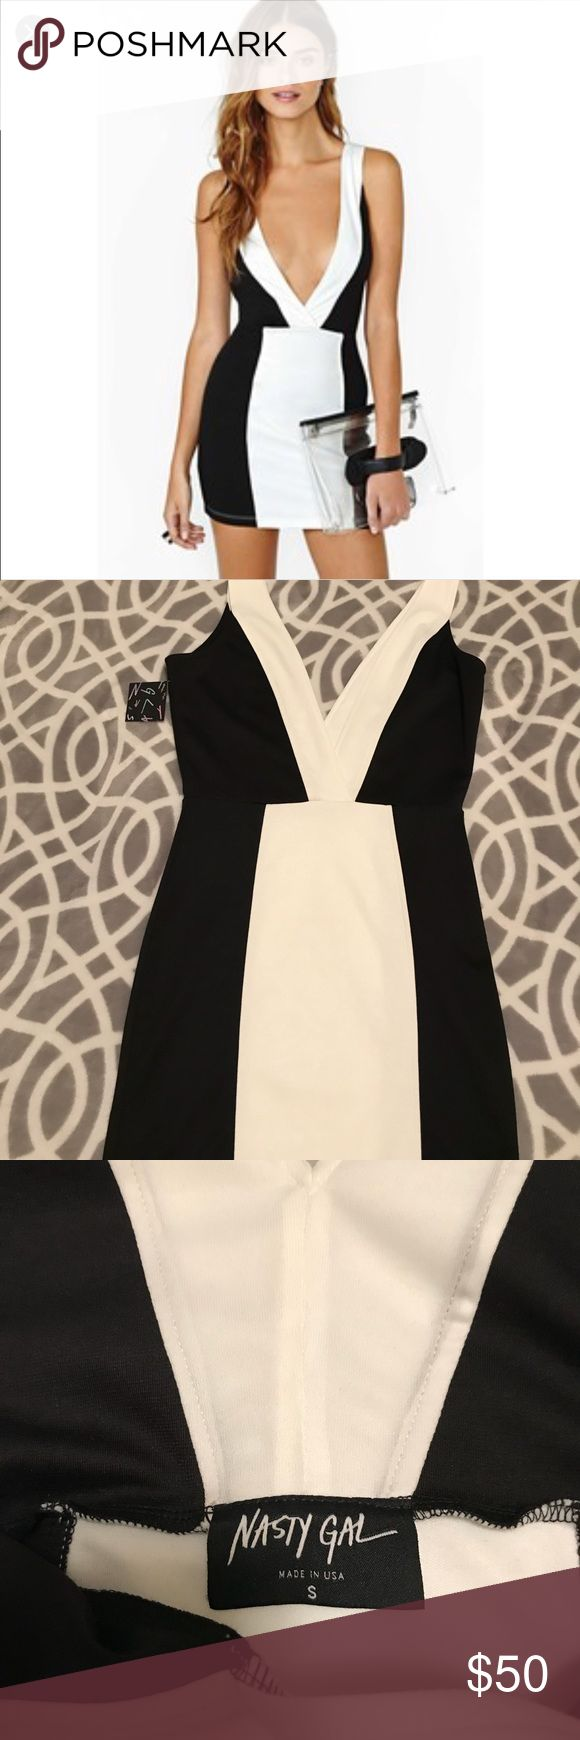 Nasty Gal Bond Dress NWT Nast Gal Bond Dress. Black and White mini fitted dress with extreme plunging bust front. Bought this dress and turned out to be too small. It's a Women's small but runs like an extra small. This dress has been sold out. Super excited for anyone who decides to buy this hot dress! Nasty Gal Dresses Mini